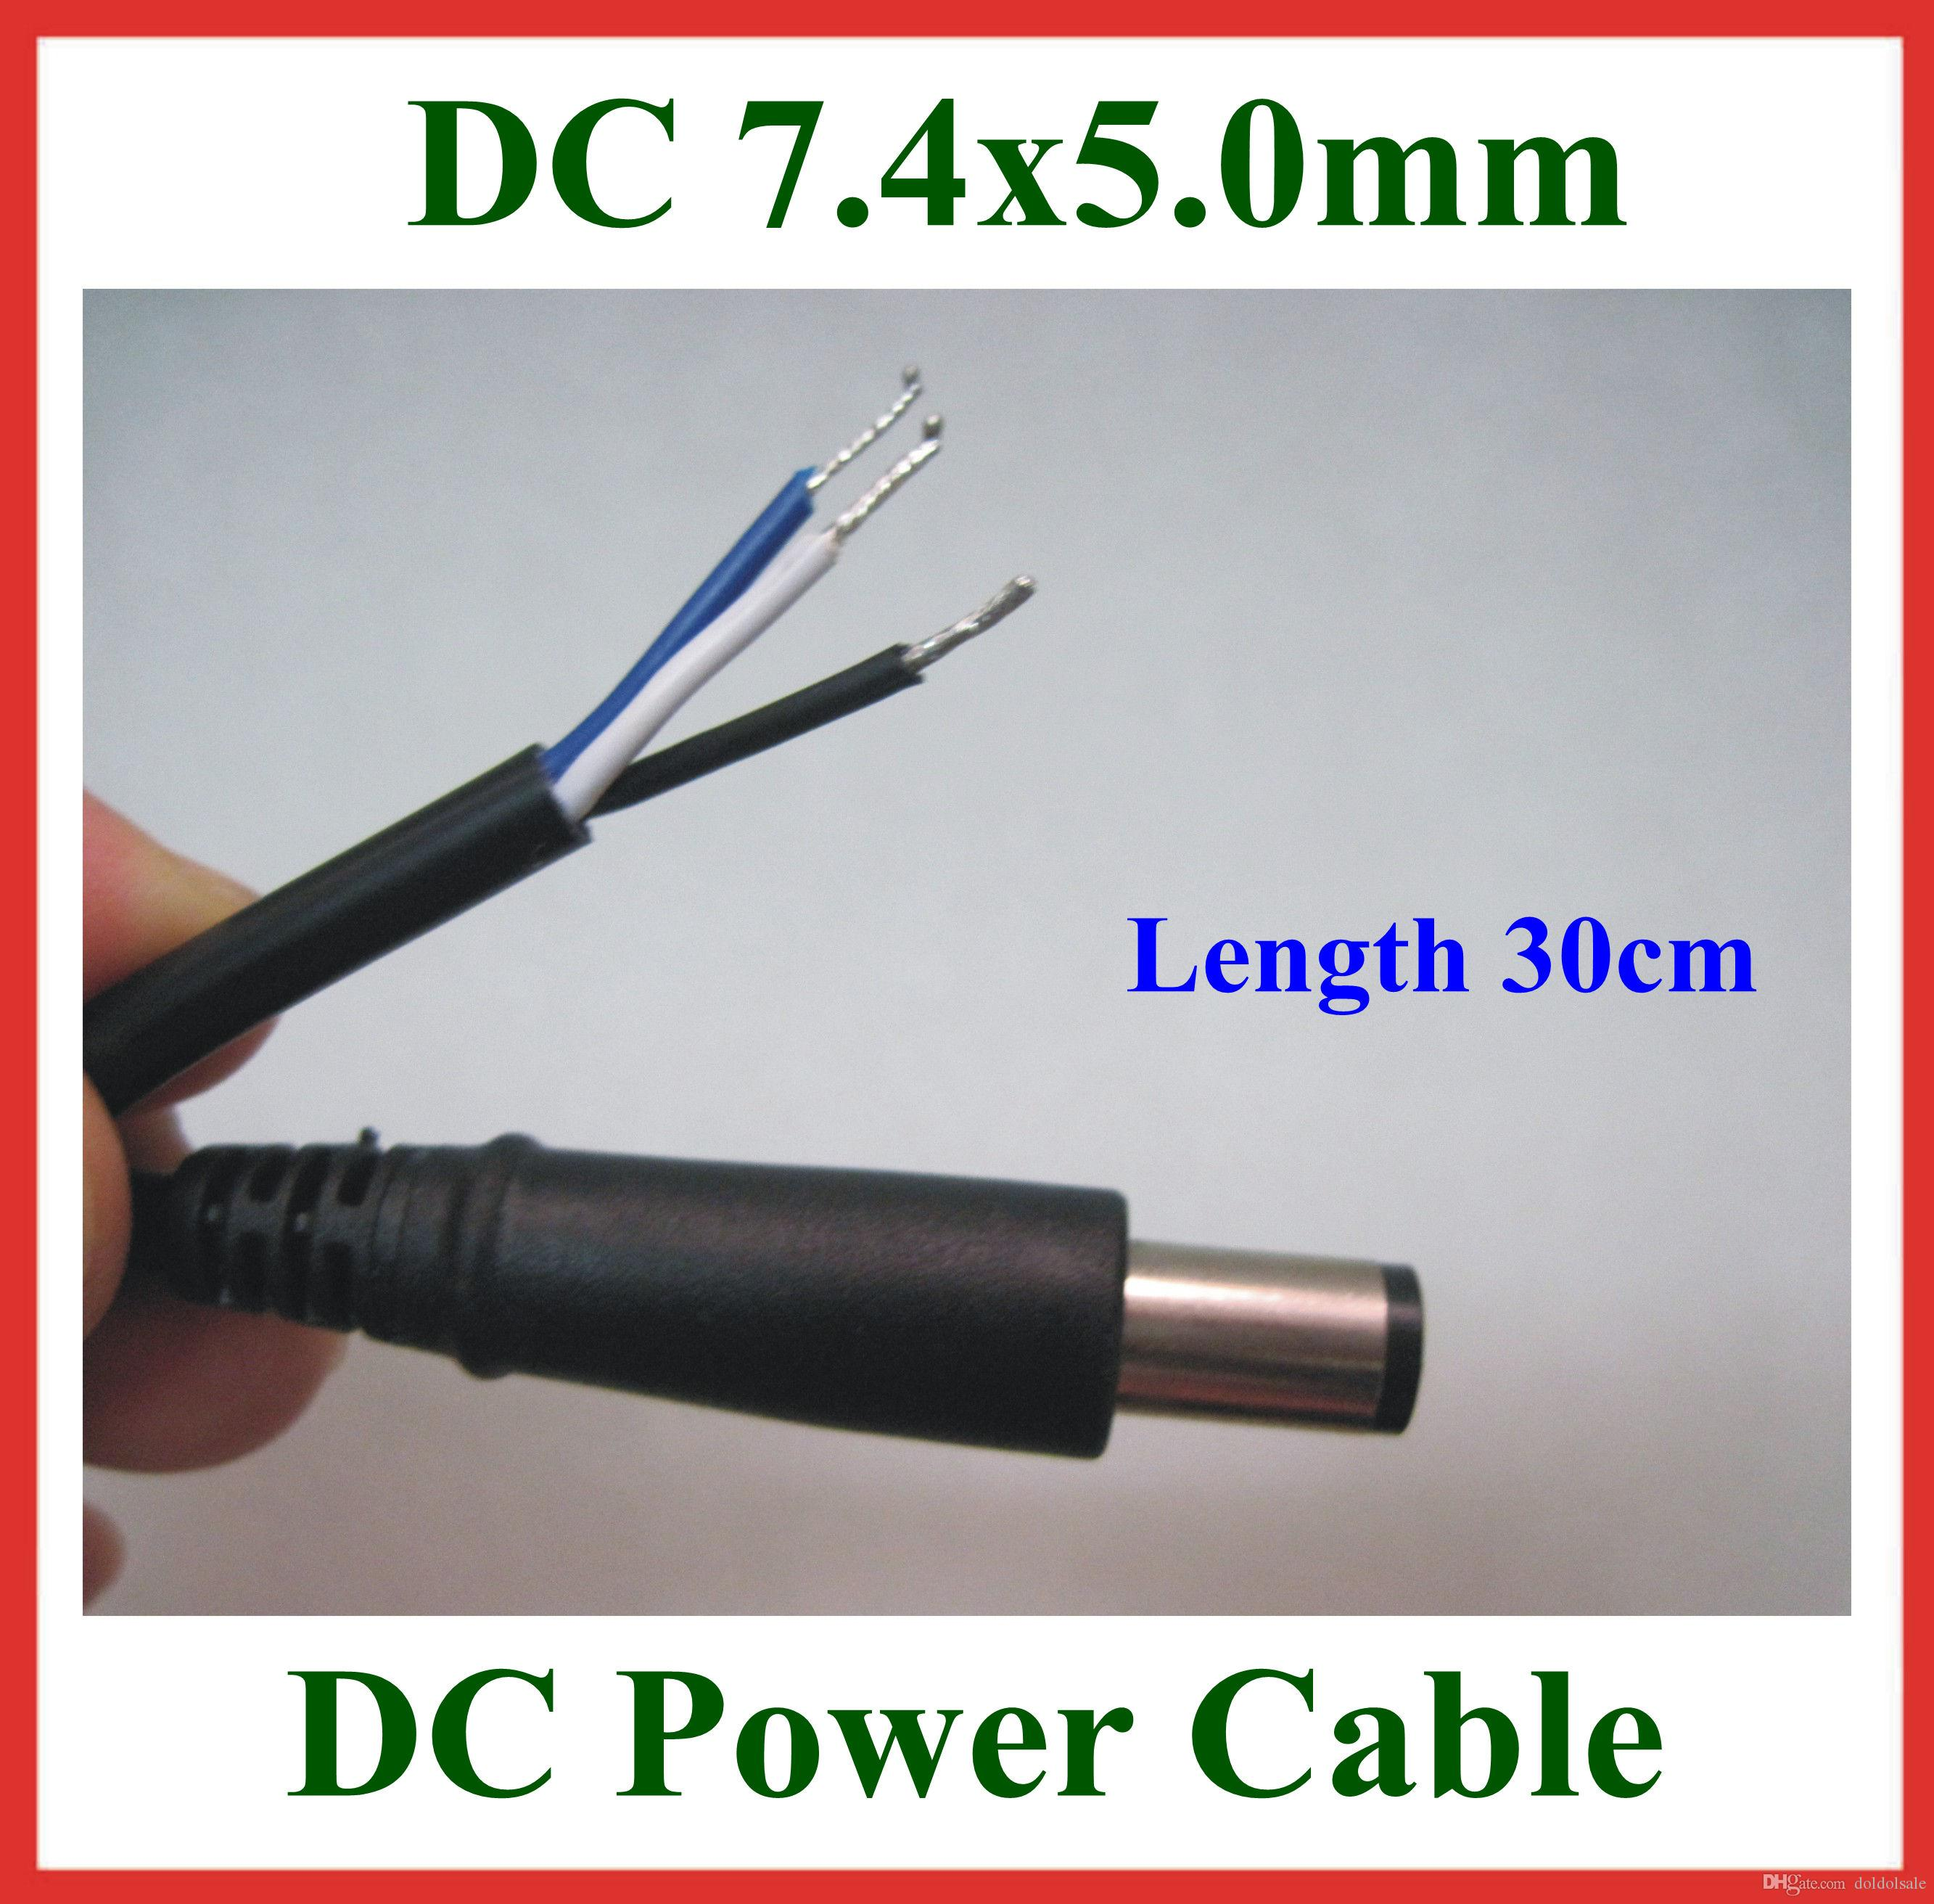 2pcs dc tip plug 7 4 5 0mm 7 4x5 0mm dc power dc tip plug 7 4*5 0mm 7 4x5 0mm dc power supply cable with pin wiring diagram for hp laptop charger at crackthecode.co